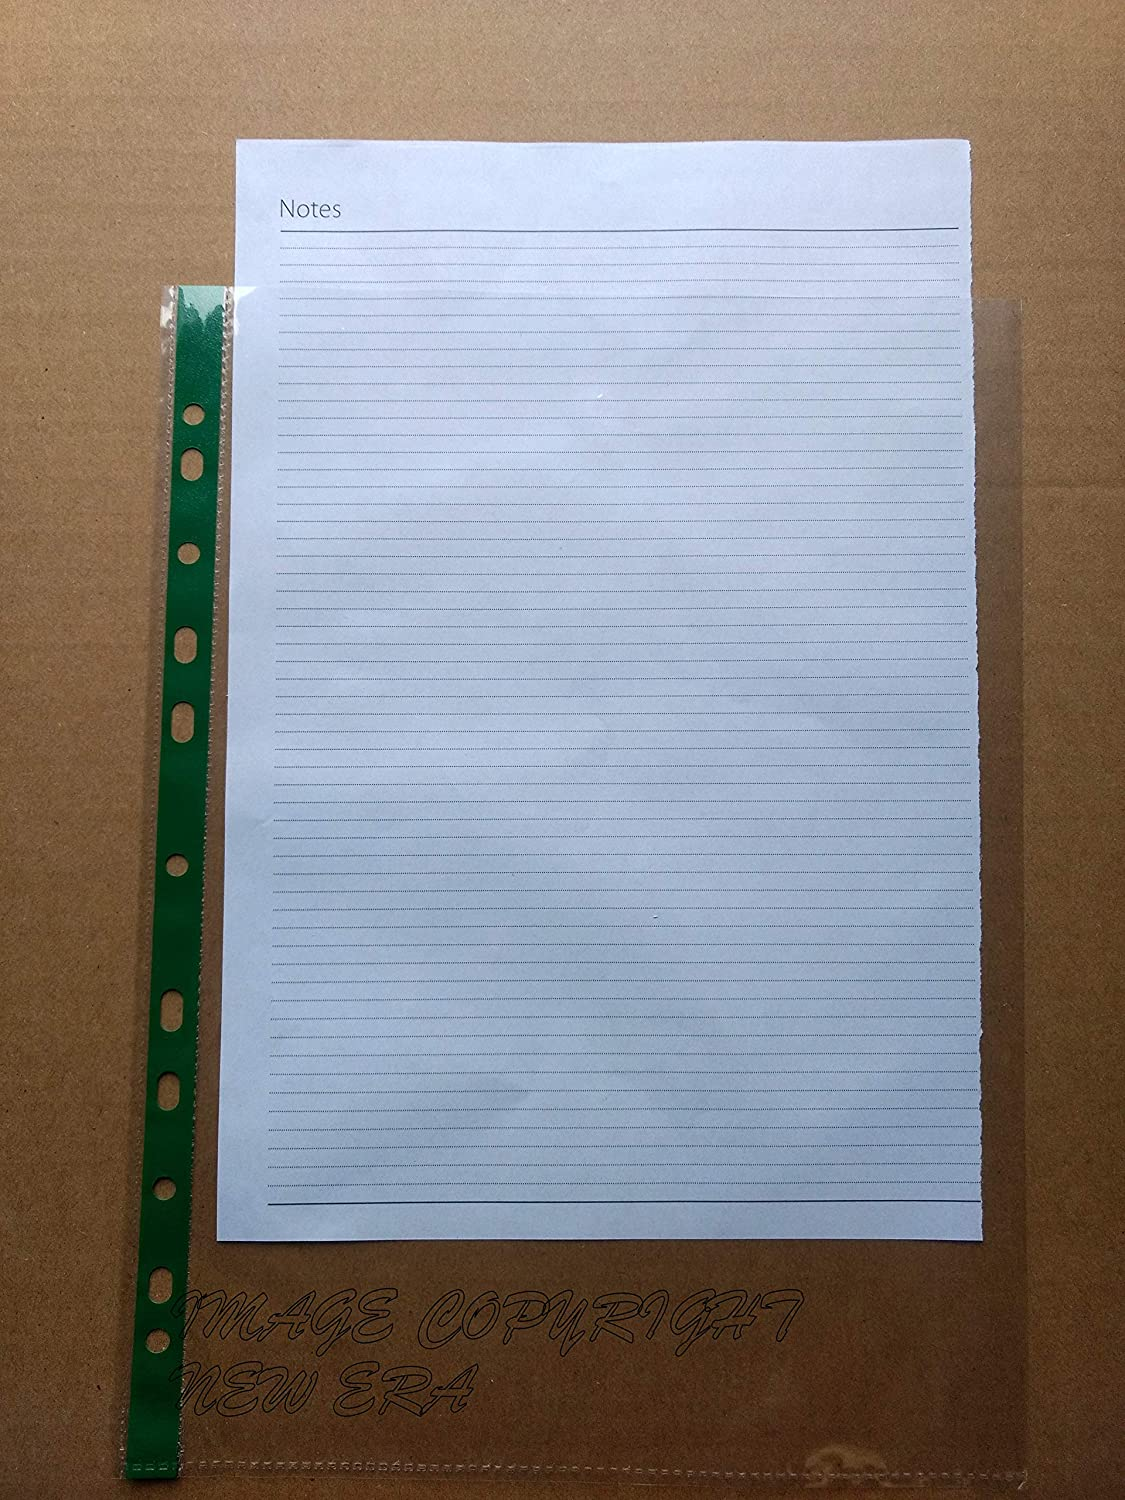 Just Stationery 20 Clear Plastic Punched Pocket